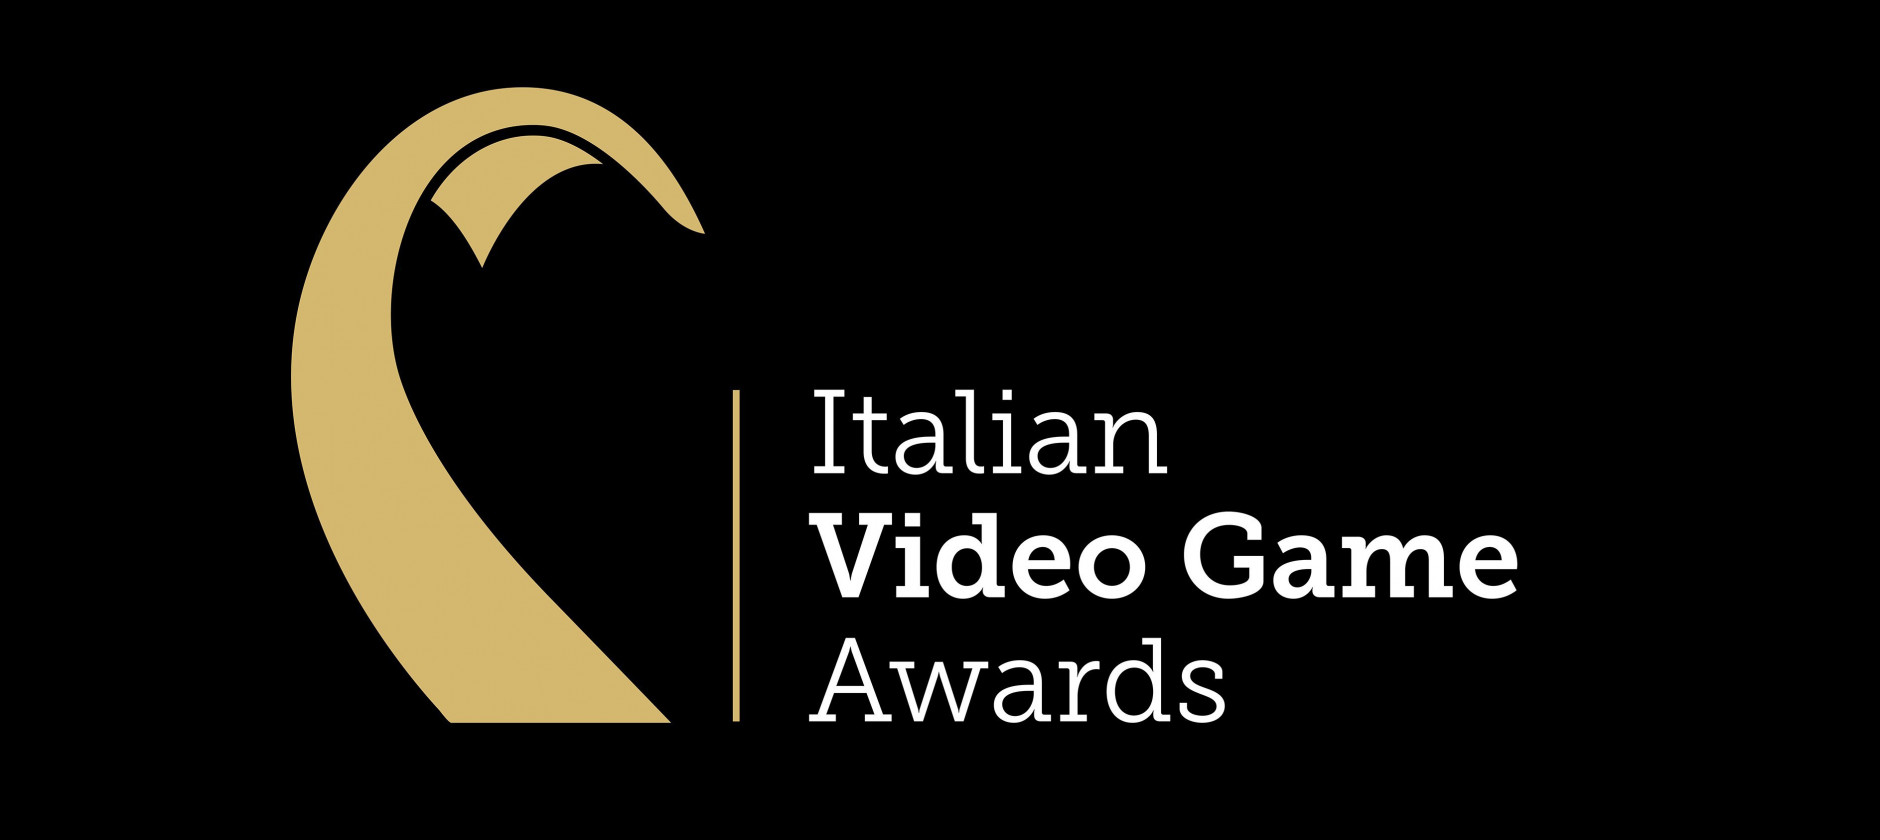 Red Dead Redemption 2 e God of War sul trono degli Italian Video Game Awards.